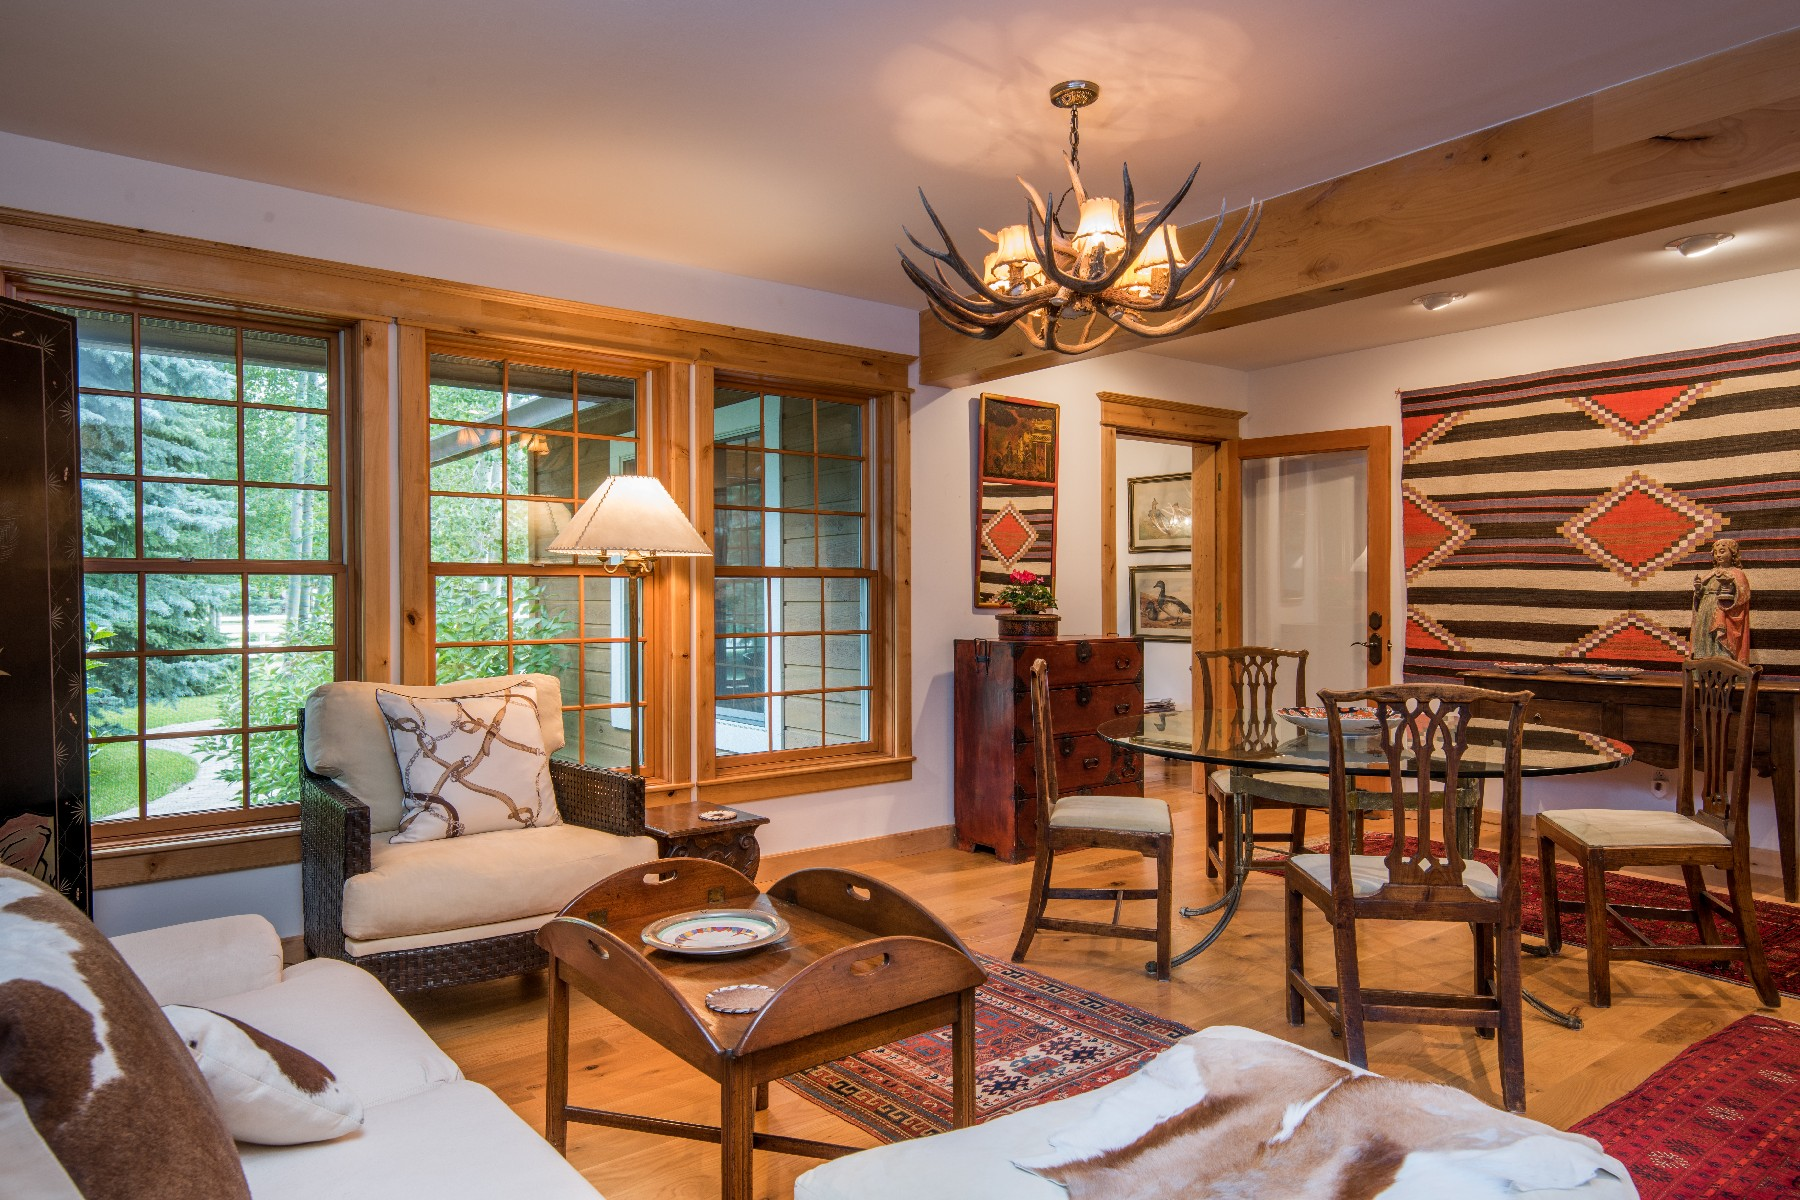 Additional photo for property listing at Aspen Hollow Elegance 113 Aspen Hollow Road Ketchum, Idaho 83340 United States